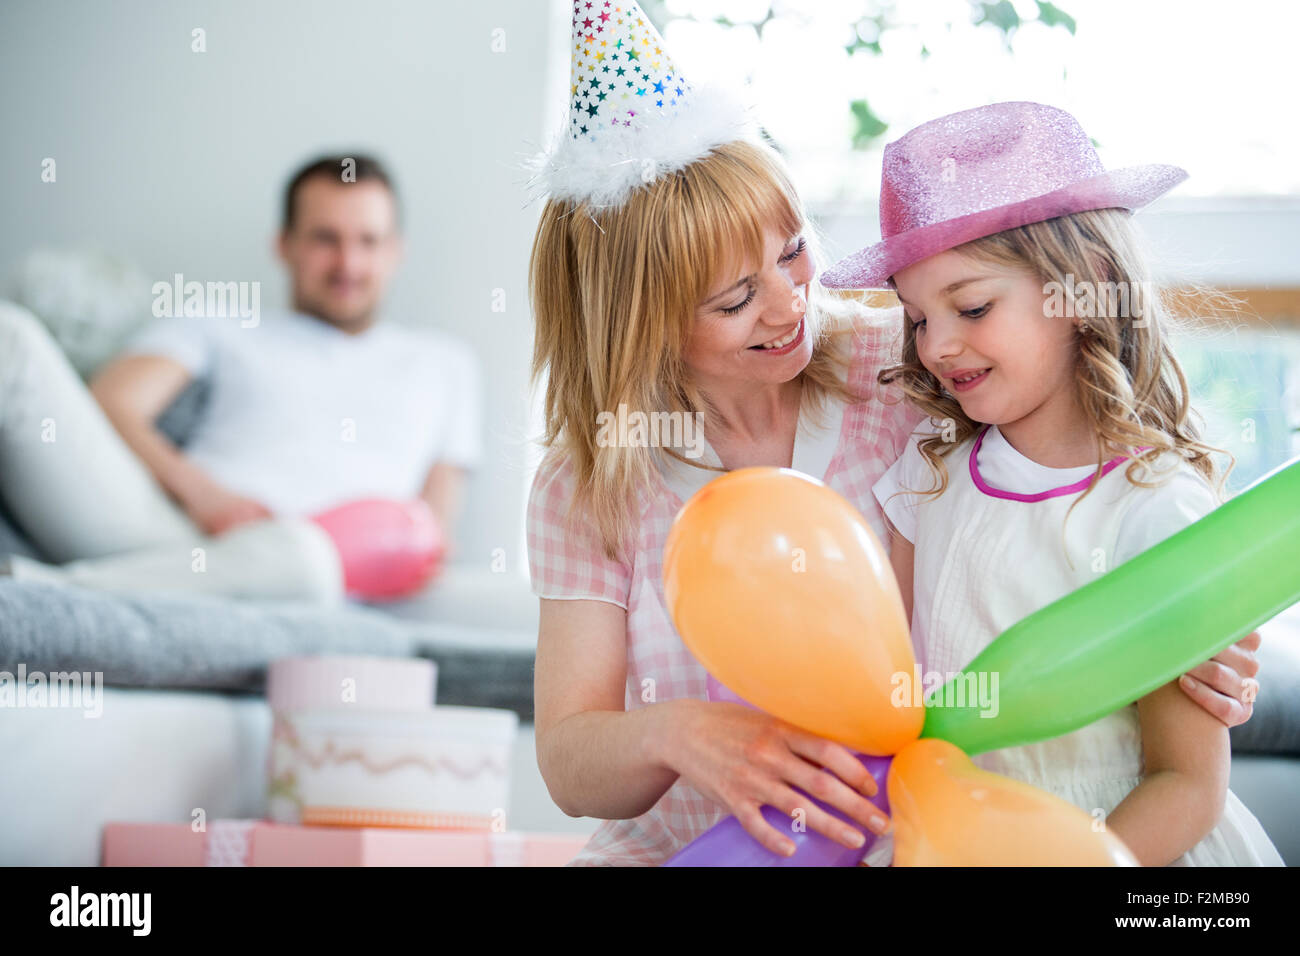 Party Hats Stock Photos Images